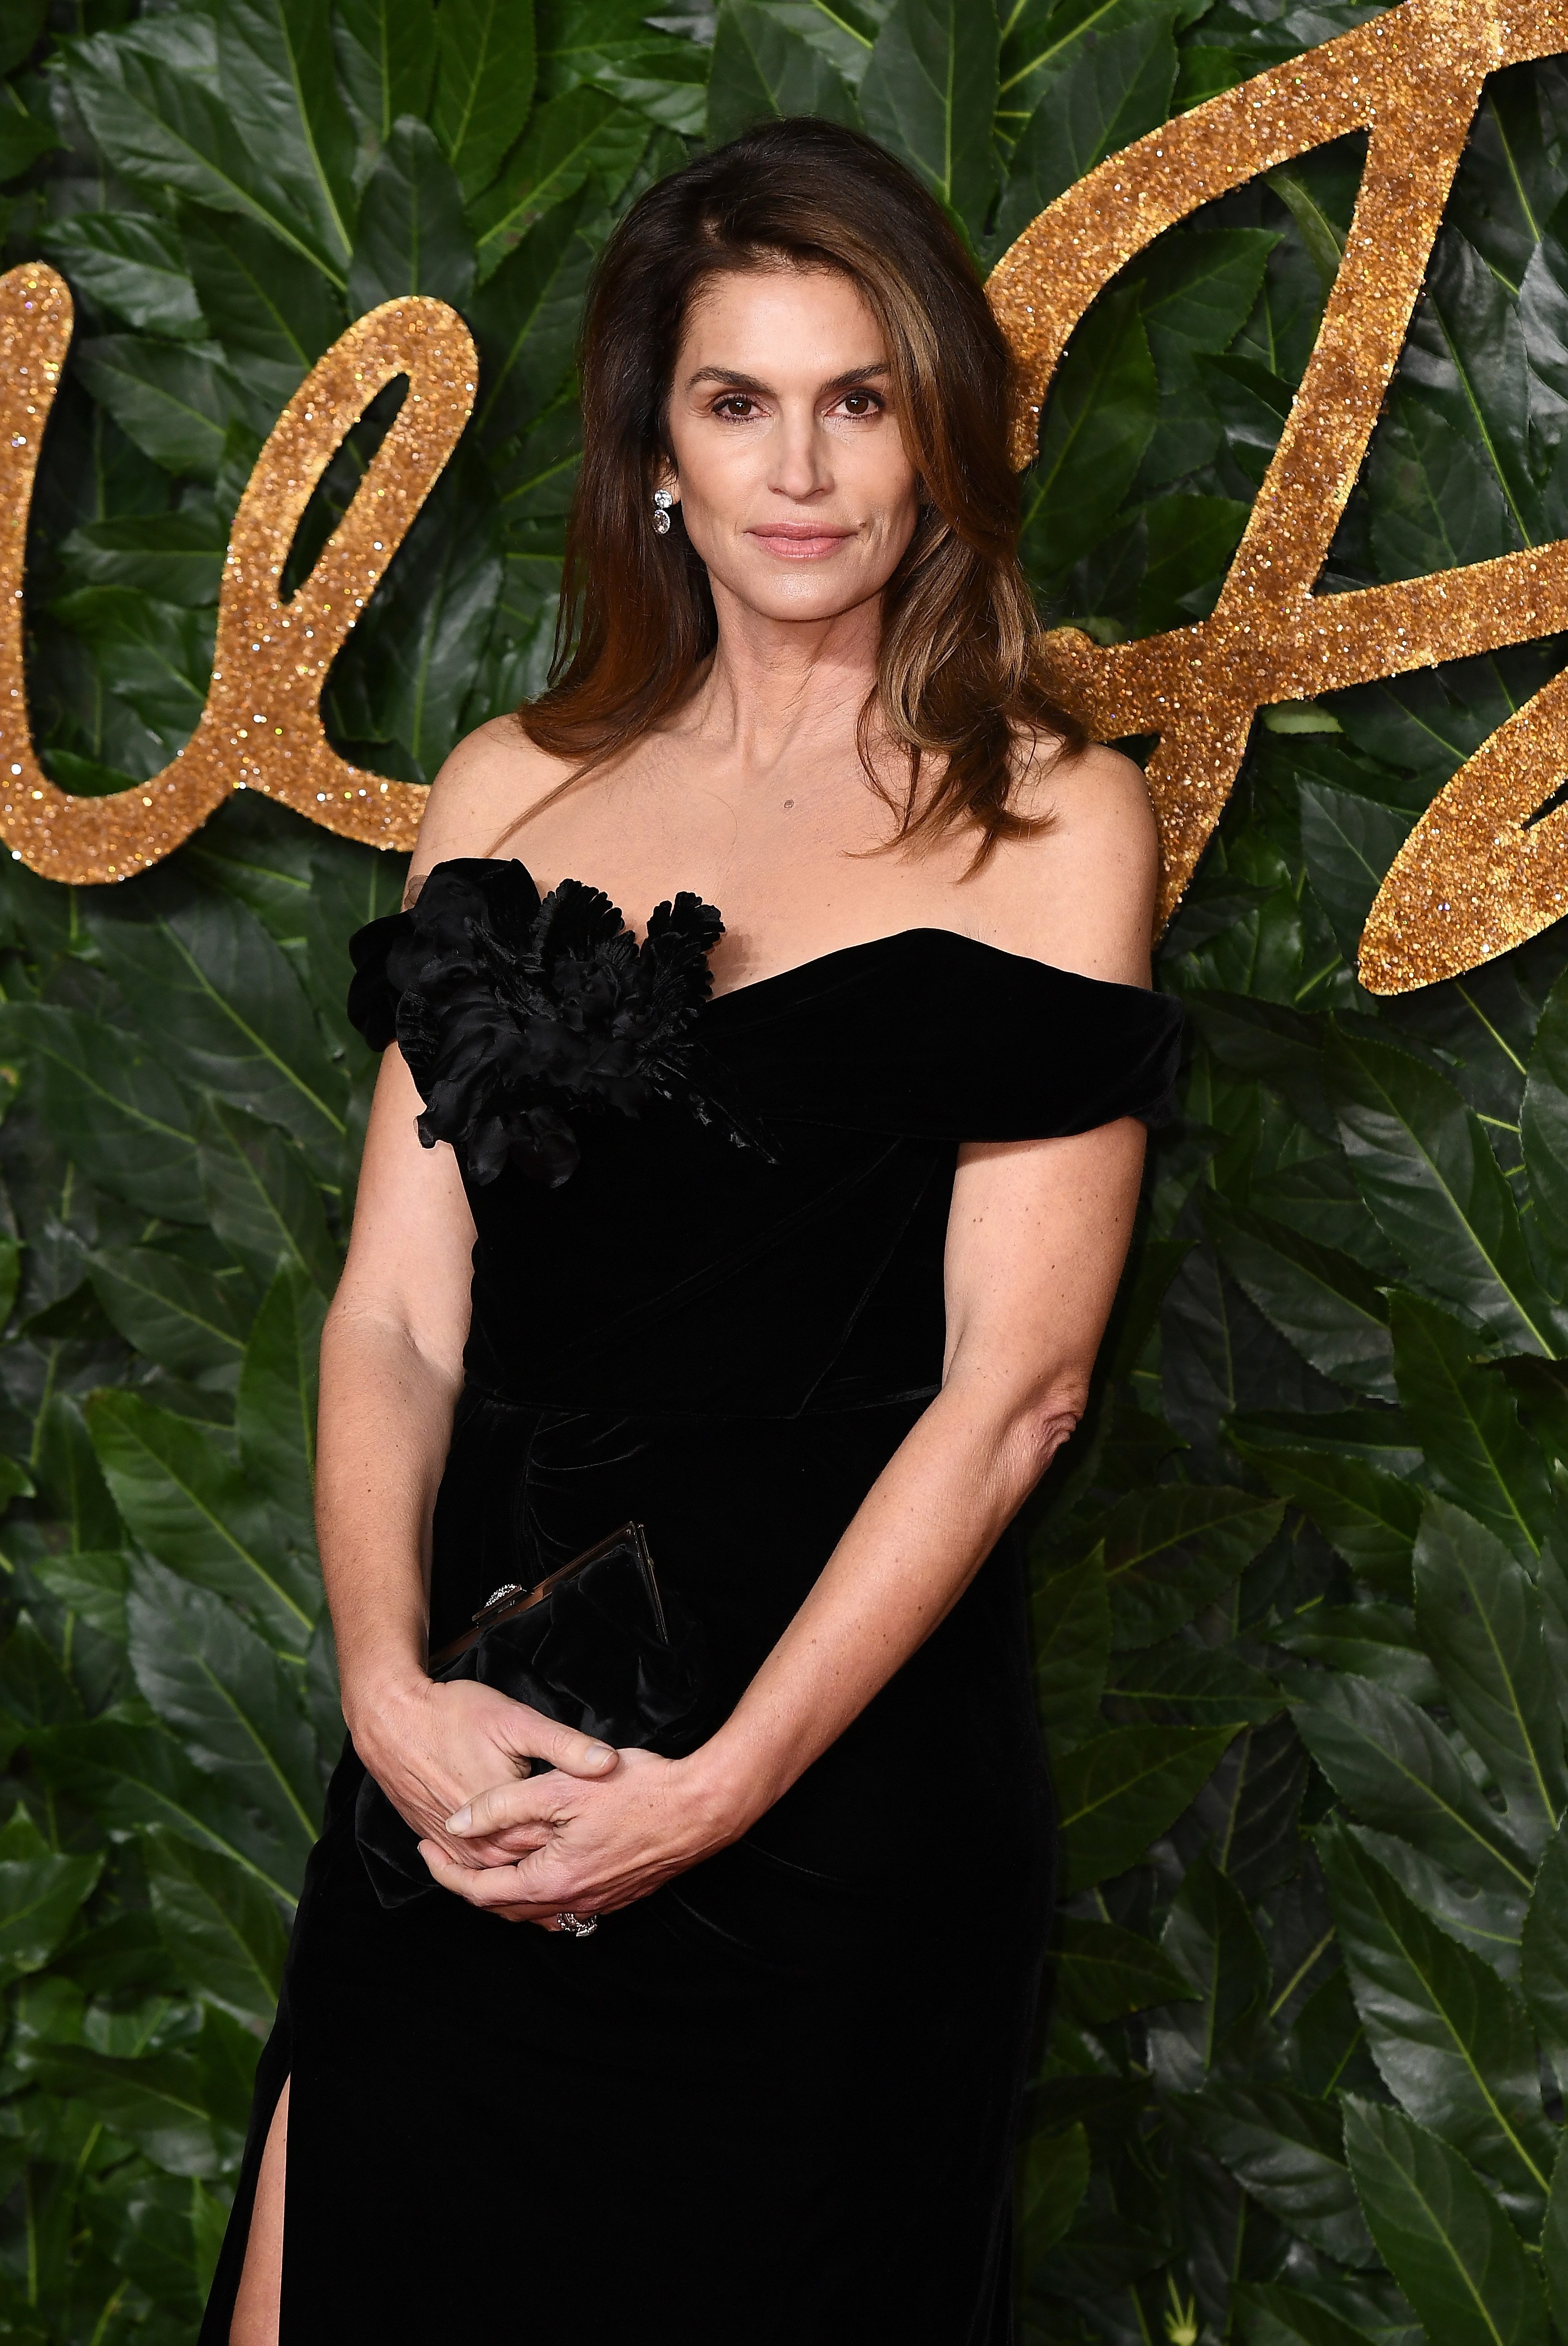 Cindy Crawford arrives at The Fashion Awards 2018 at Royal Albert Hall on December 10, 2018 in London, England   Photo: Getty Images